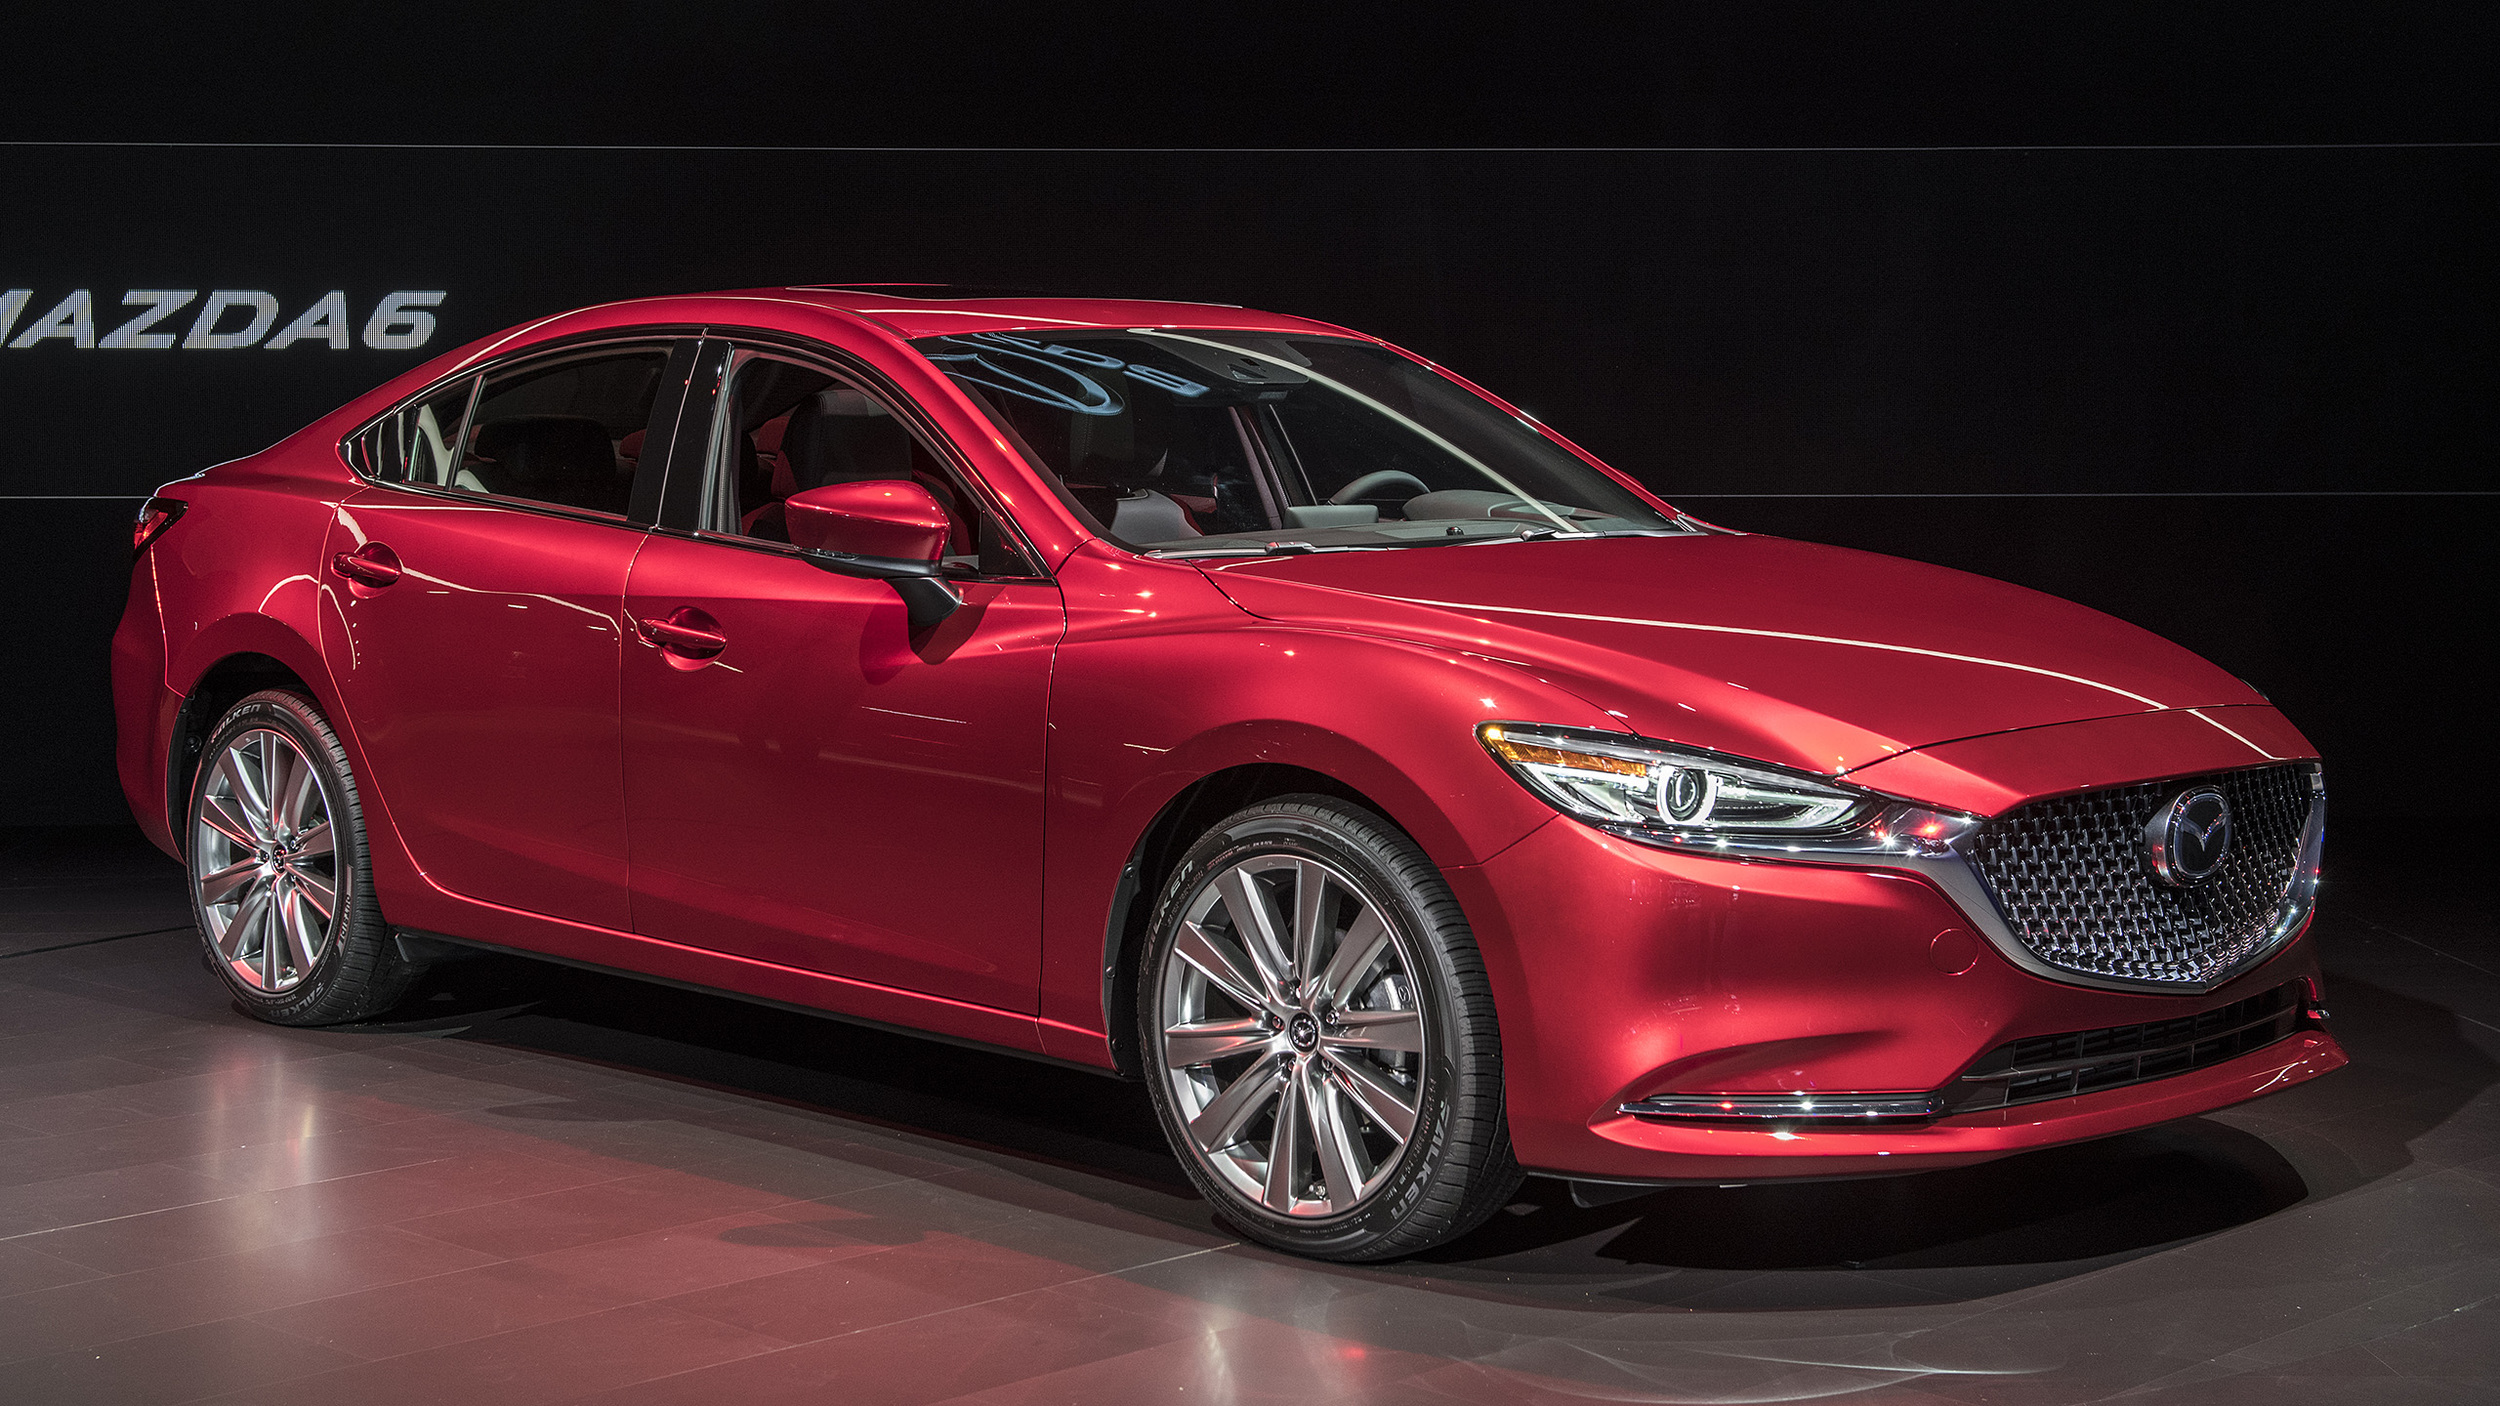 2018 mazda6 la 2017 autoblog. Black Bedroom Furniture Sets. Home Design Ideas